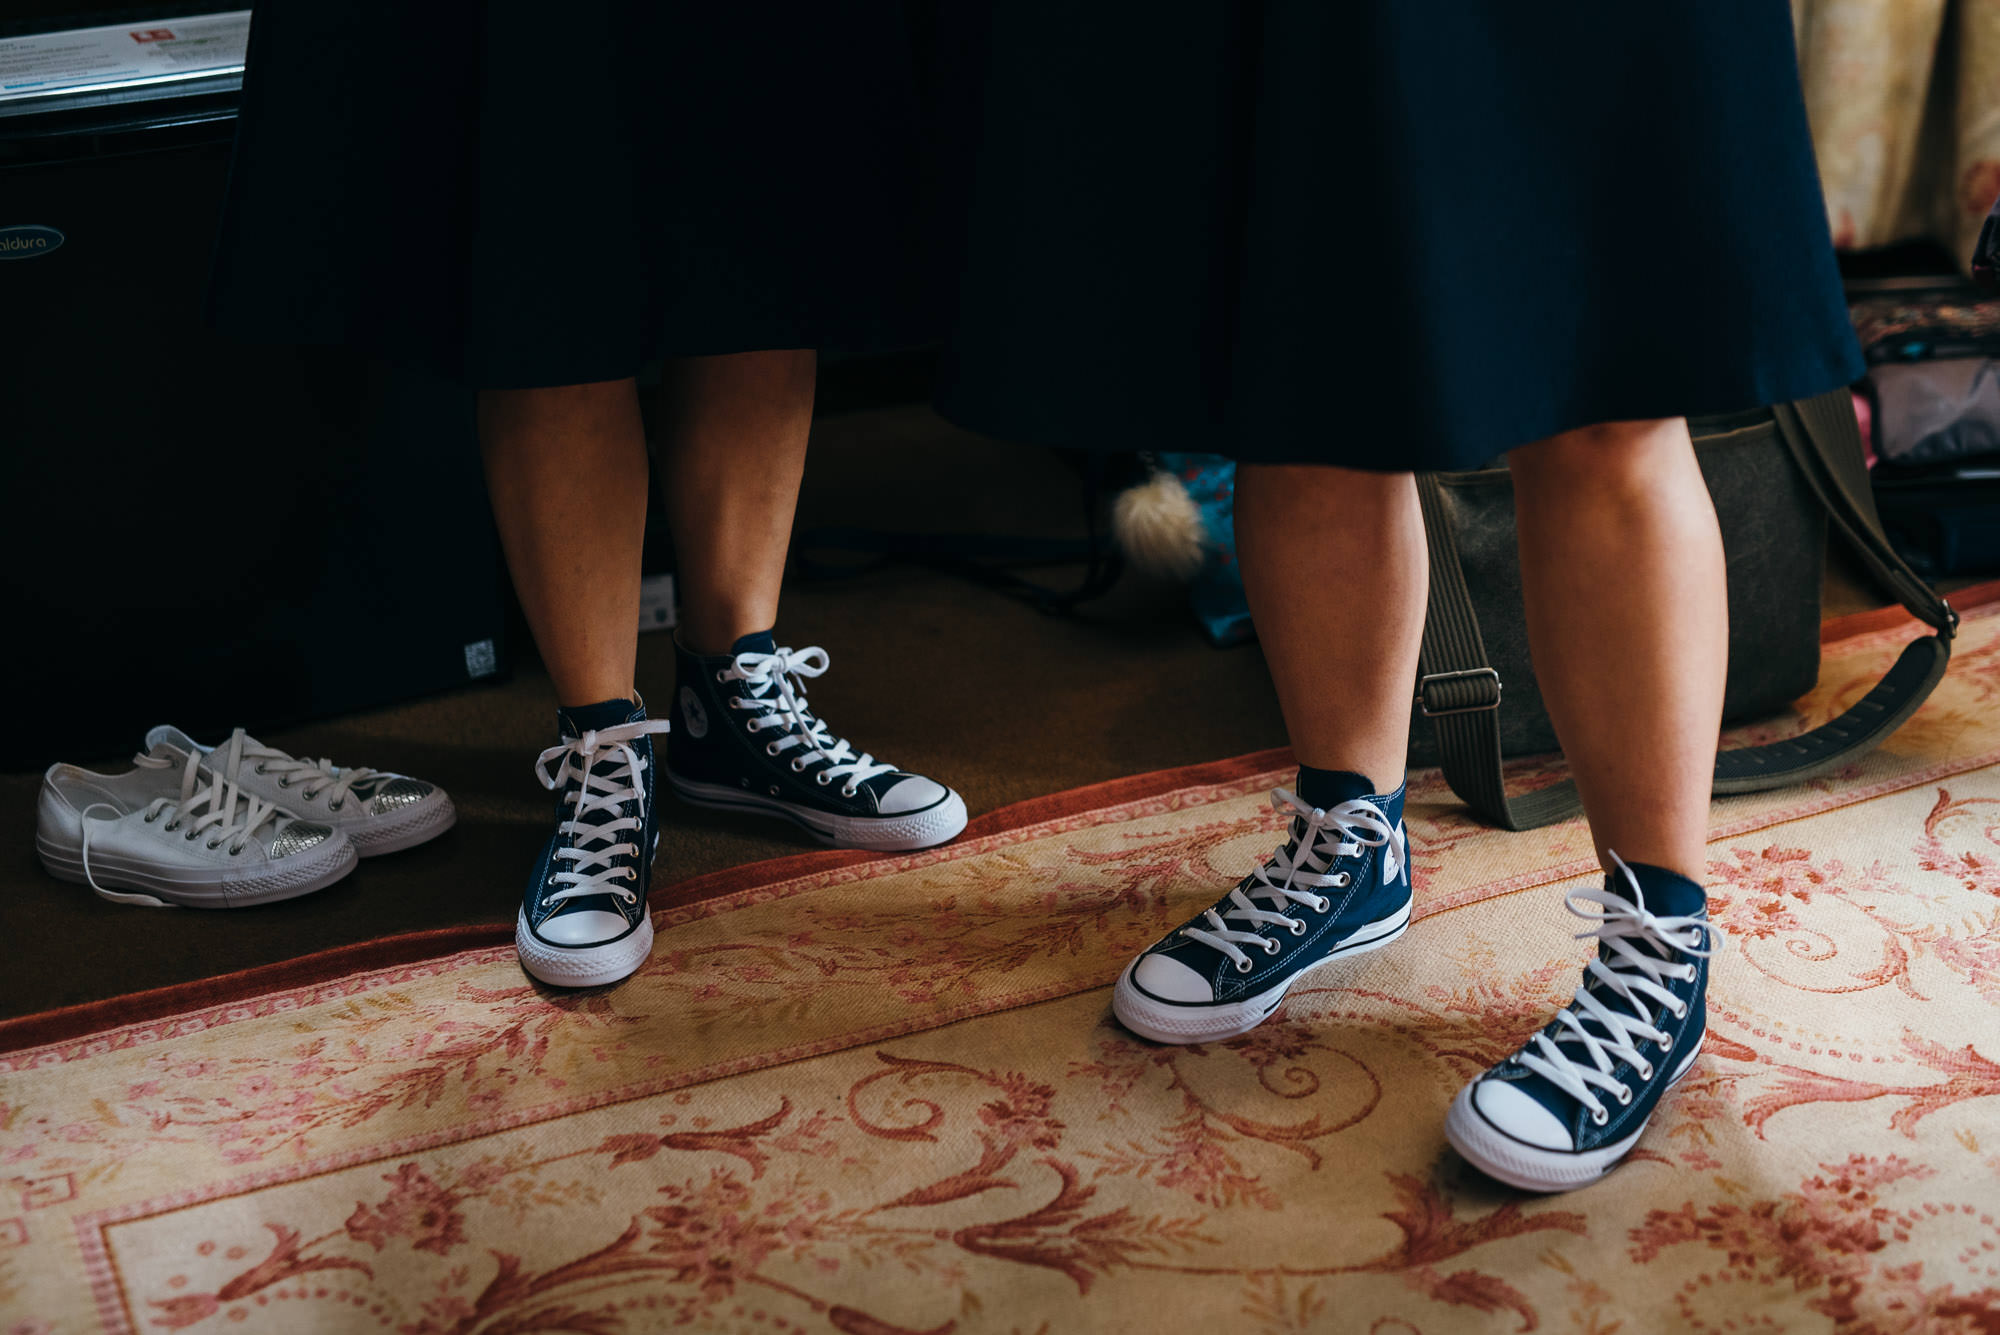 Bridesmaids in converse shoes